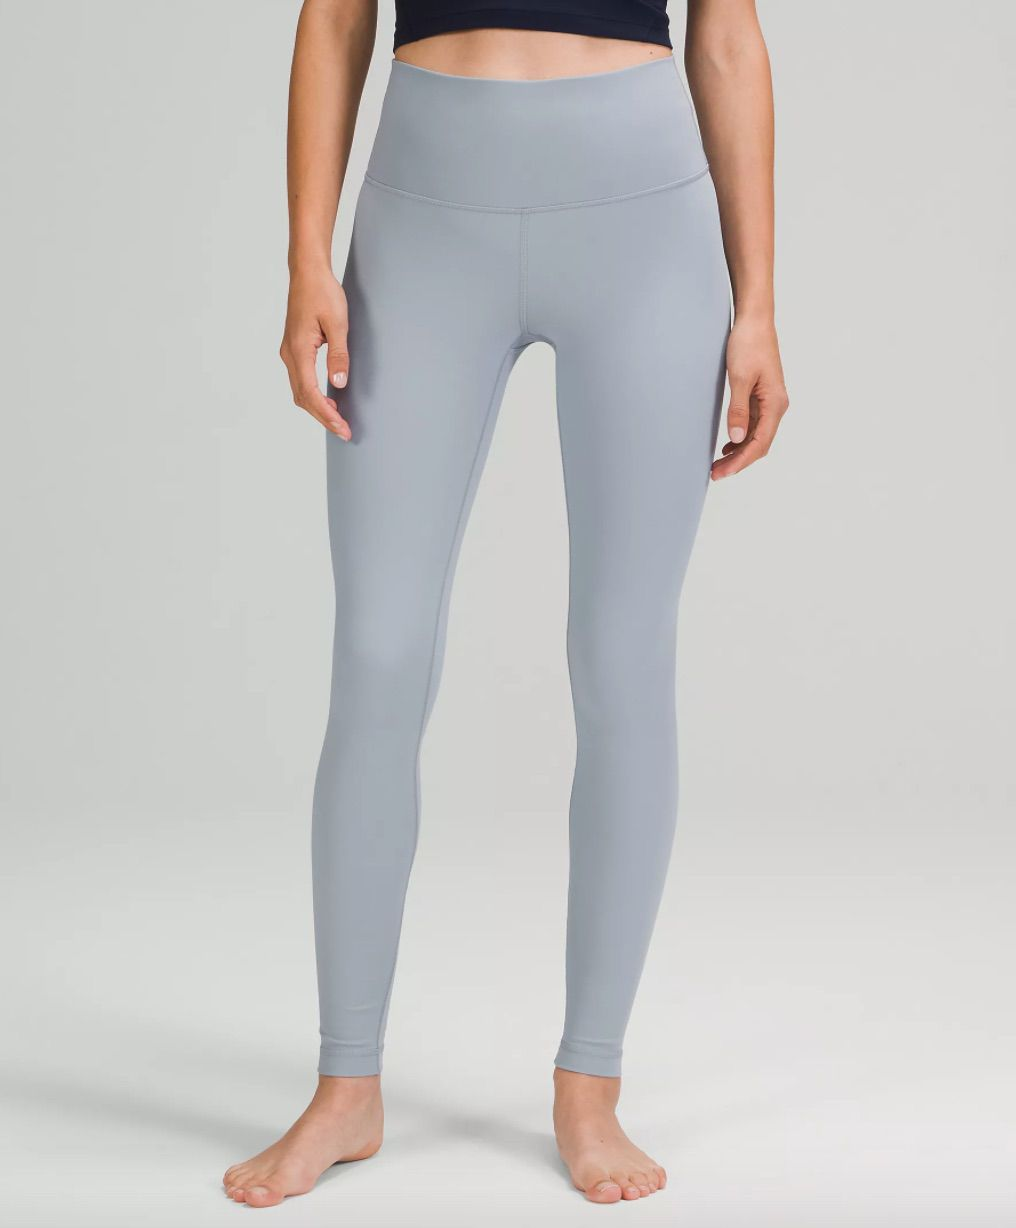 Wunder Under High-Rise Tights